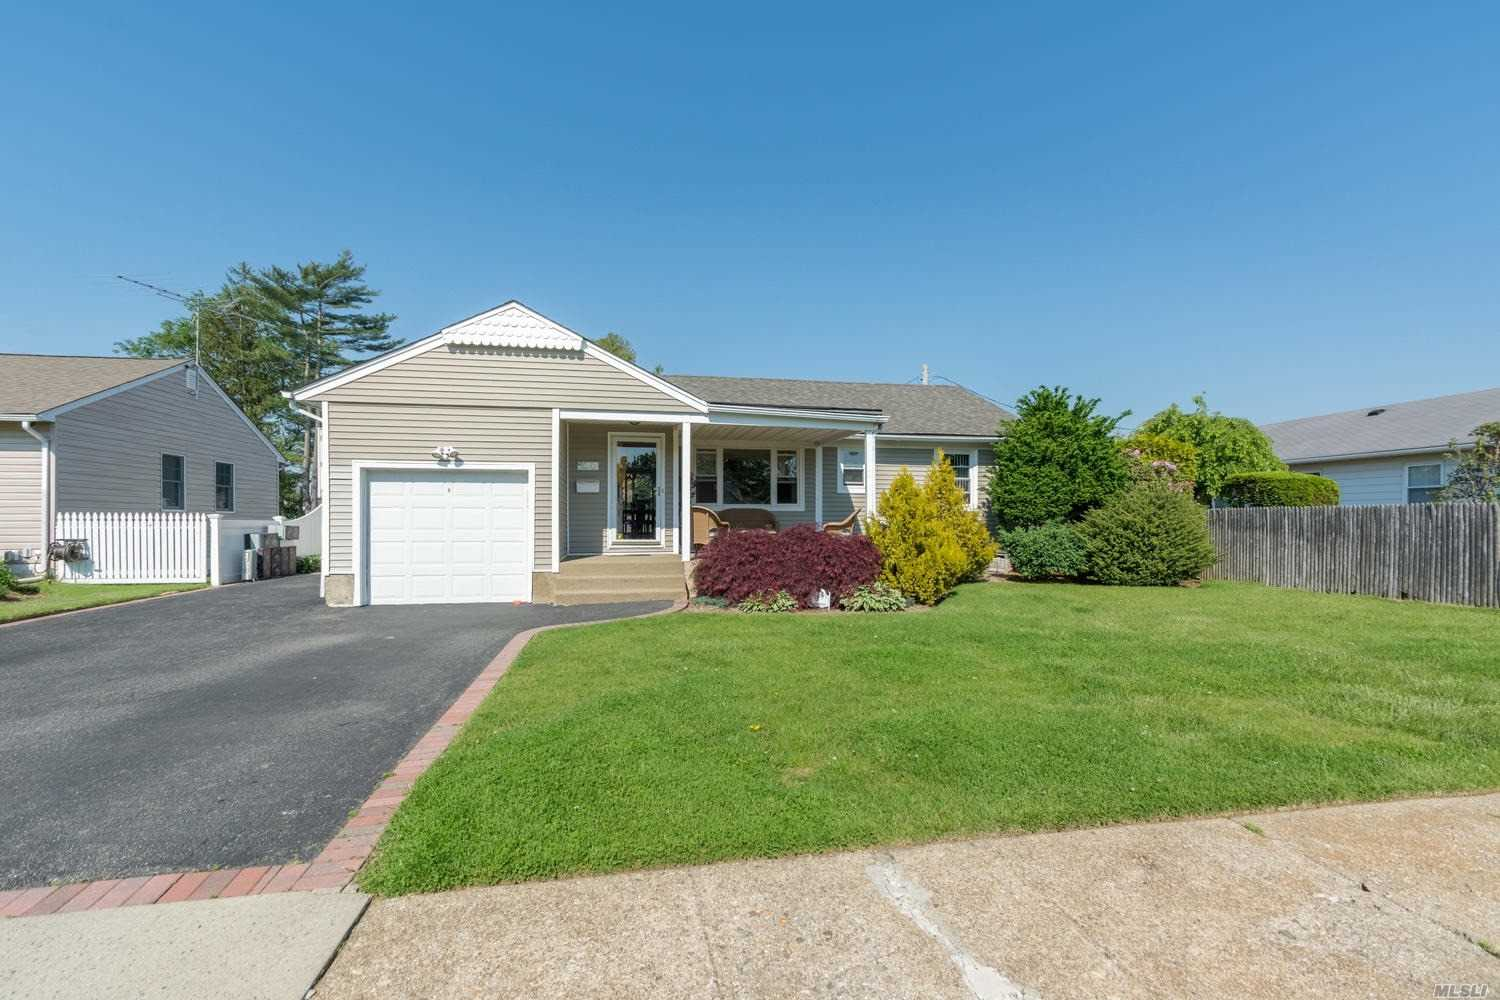 Charming Ranch In Desirable Plainedge School District. 3 Bedrooms, One Bath, Full Finished Basement With Ose. Quiet Block, Private Yard, Don't Miss Out On This Amazing Opportunity!